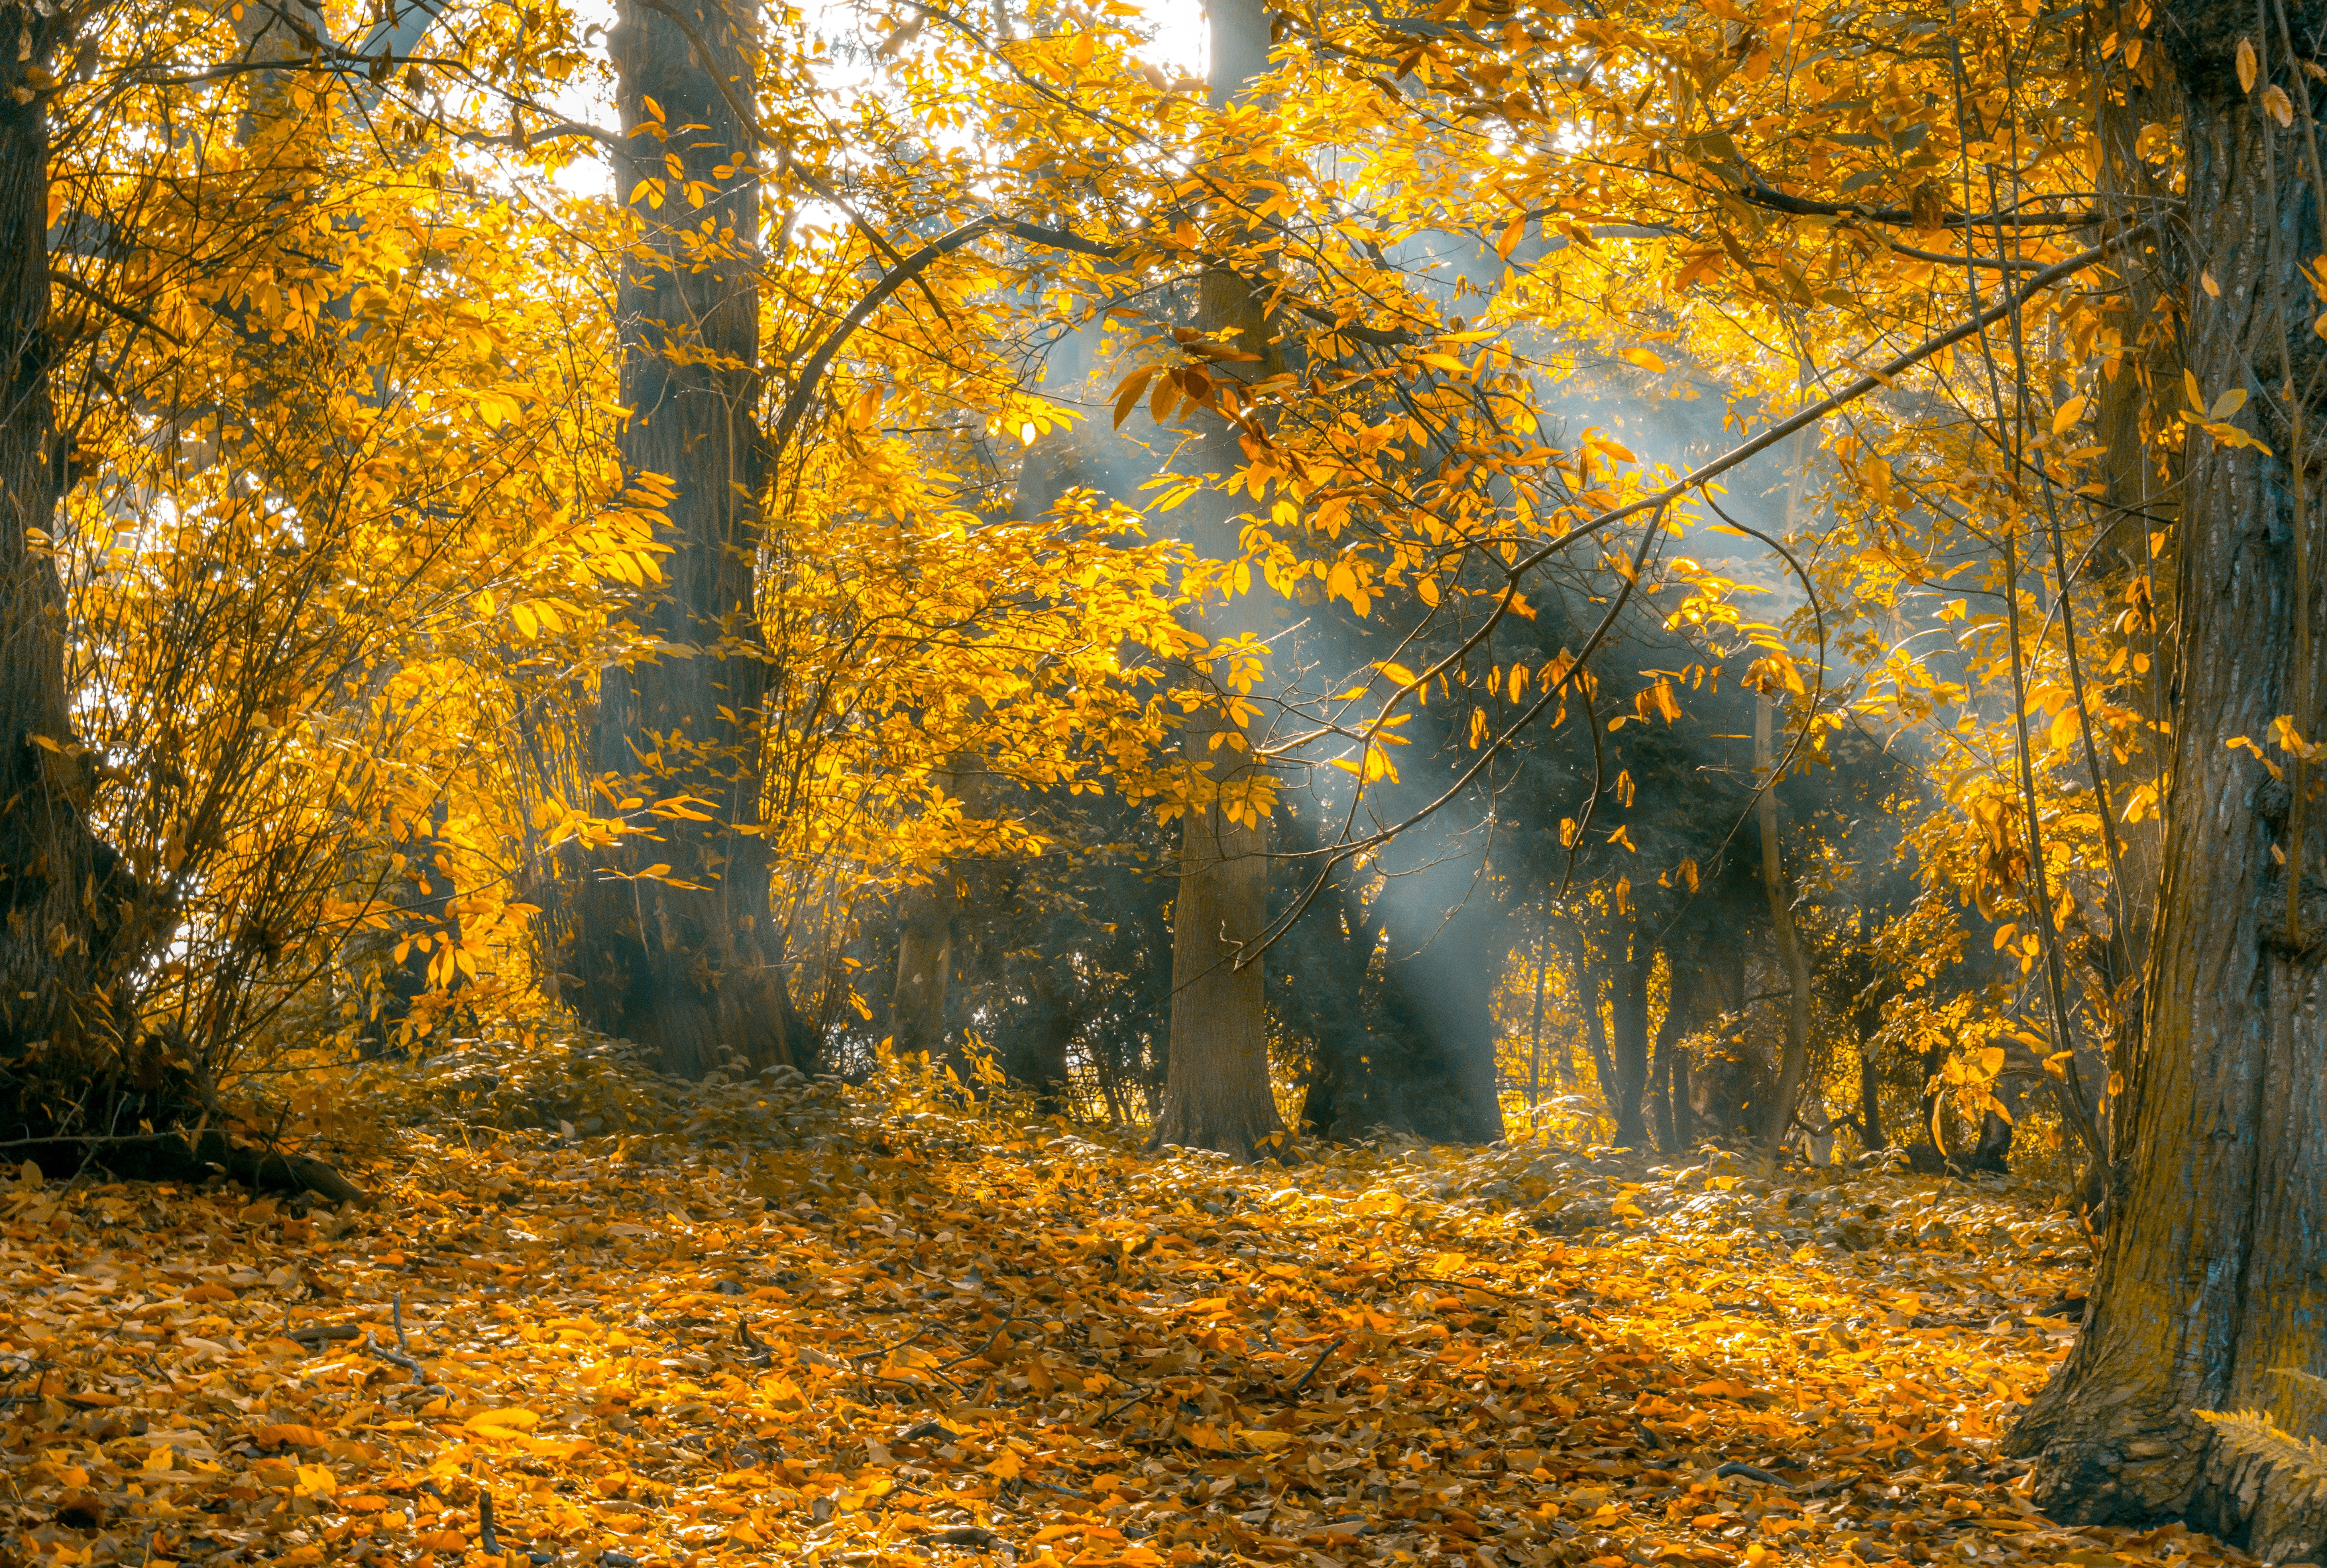 Fall Wallpaper With Deer Crepuscular Lights Passing Through Trees 183 Free Stock Photo